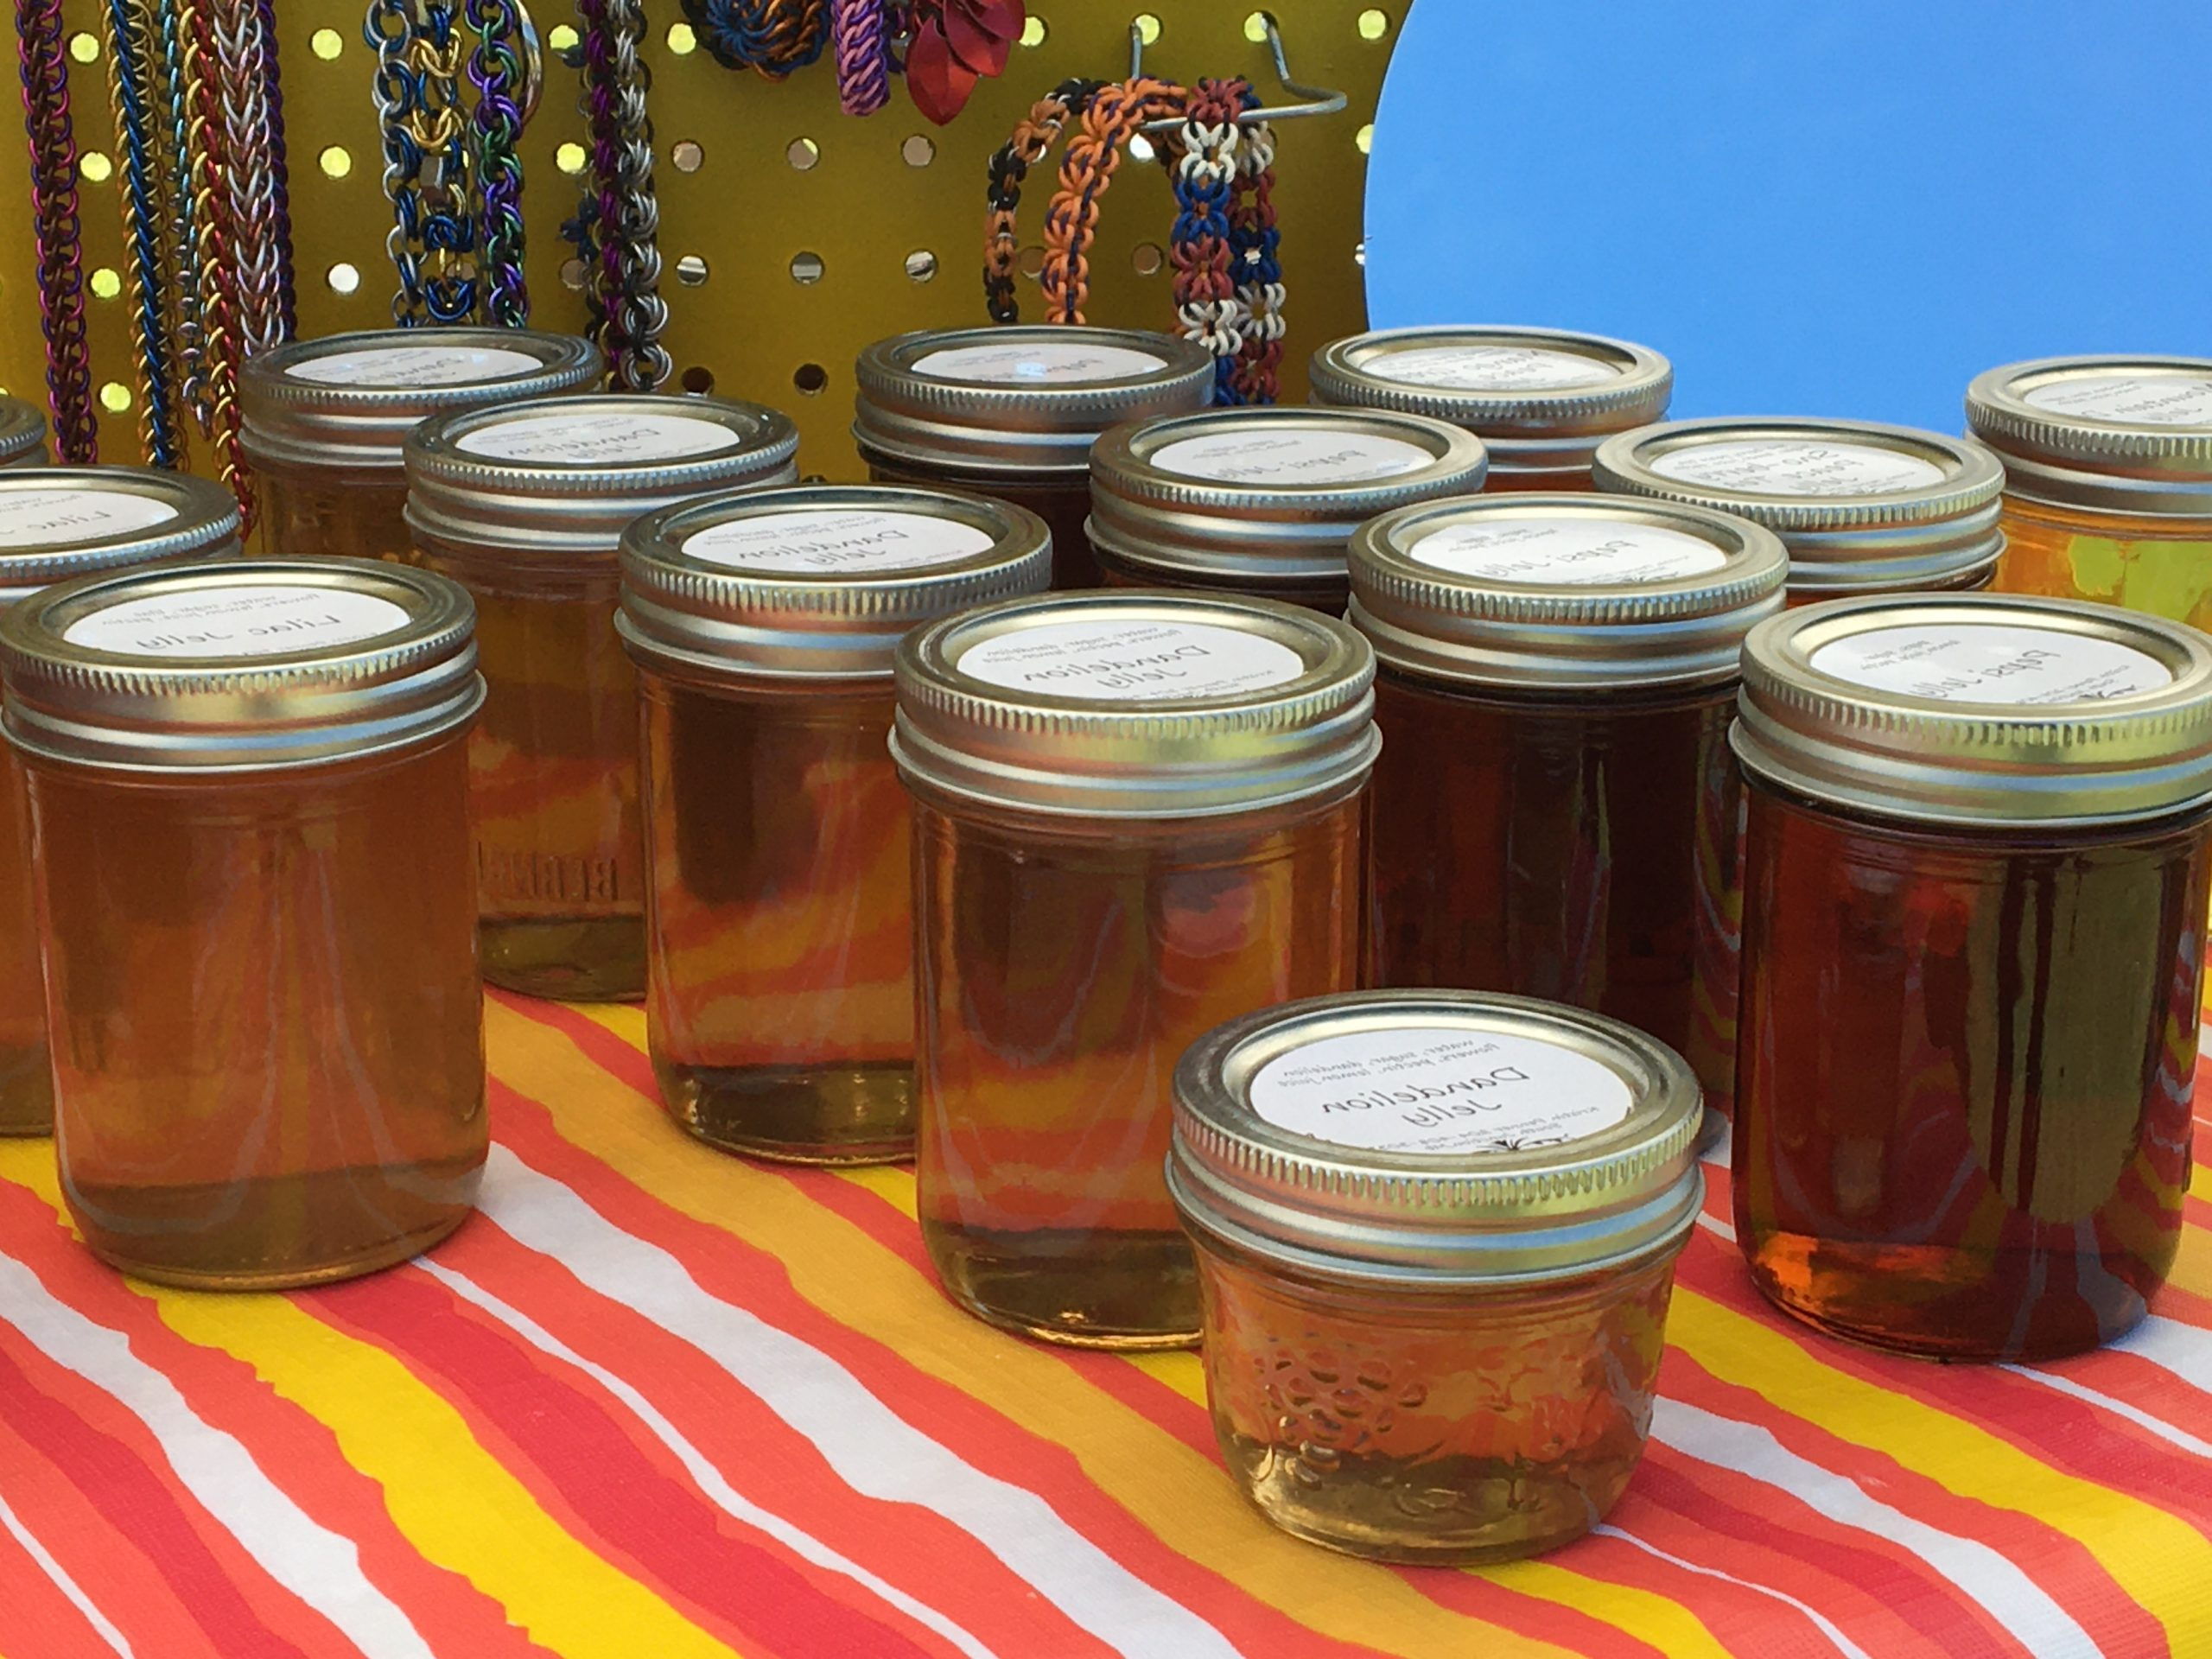 homemade preserves at Southeast Farmer's Market